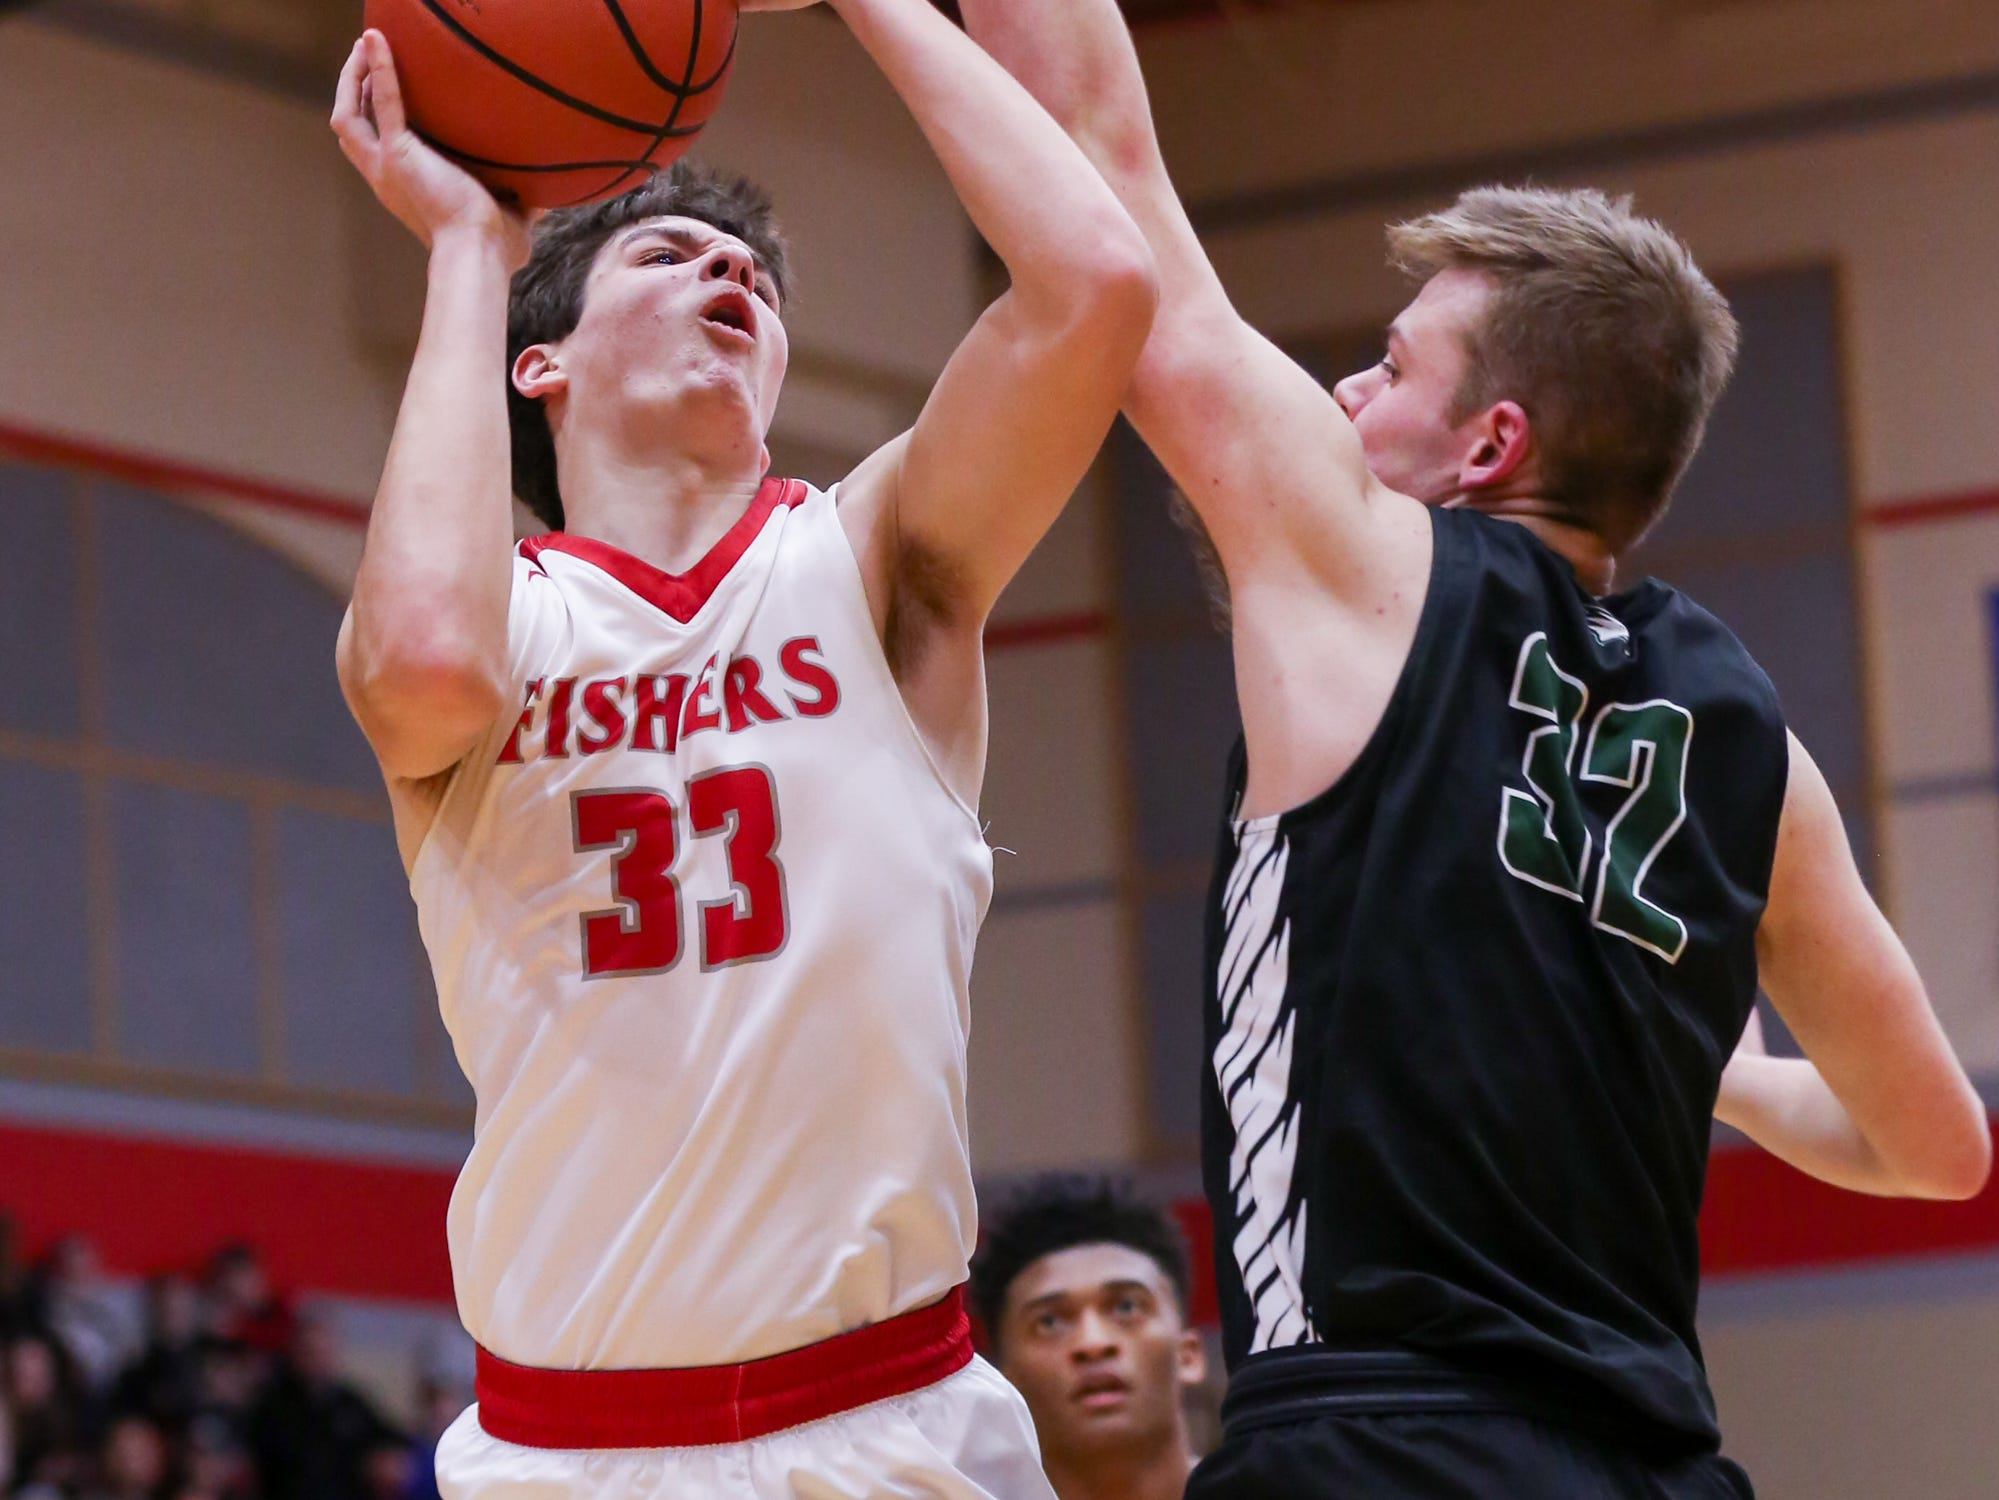 Fisher's Jeffrey Simmons (33) finds no opening around Zionsville Hogan Orbaugh (32) for a shot during the first half of Zionsville vs. Fishers high school boys varsity basketball game held at Fishers High School, February 15, 2019.